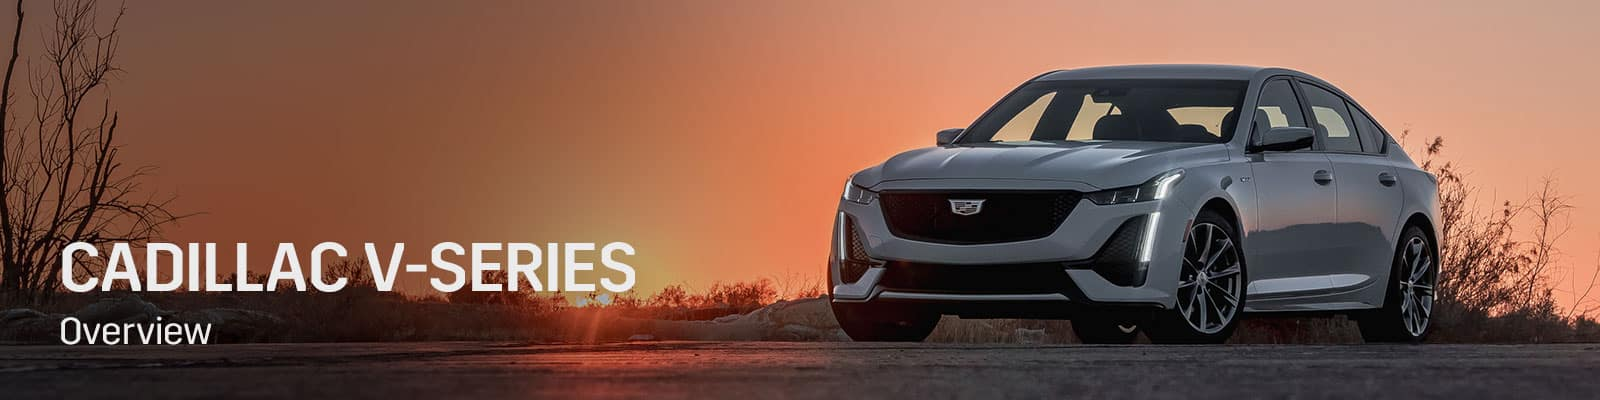 Cadillac V-Series Overview